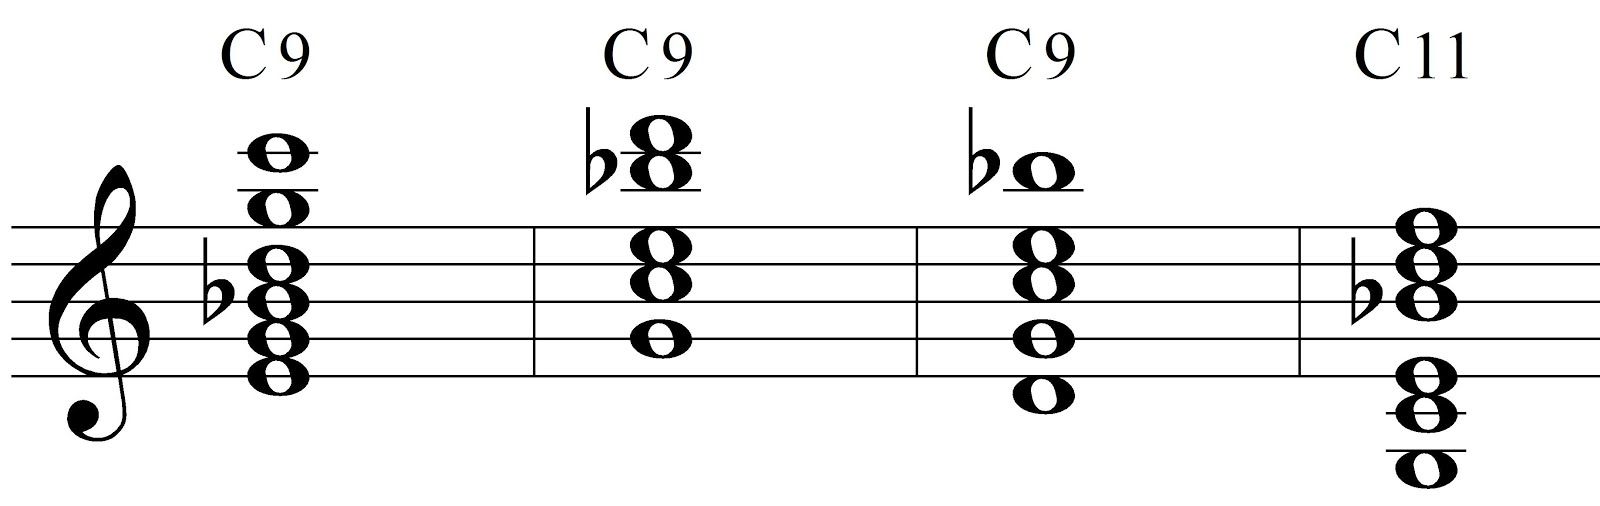 Music theory chord roots and chord inversion extended chords in inversion buycottarizona Image collections